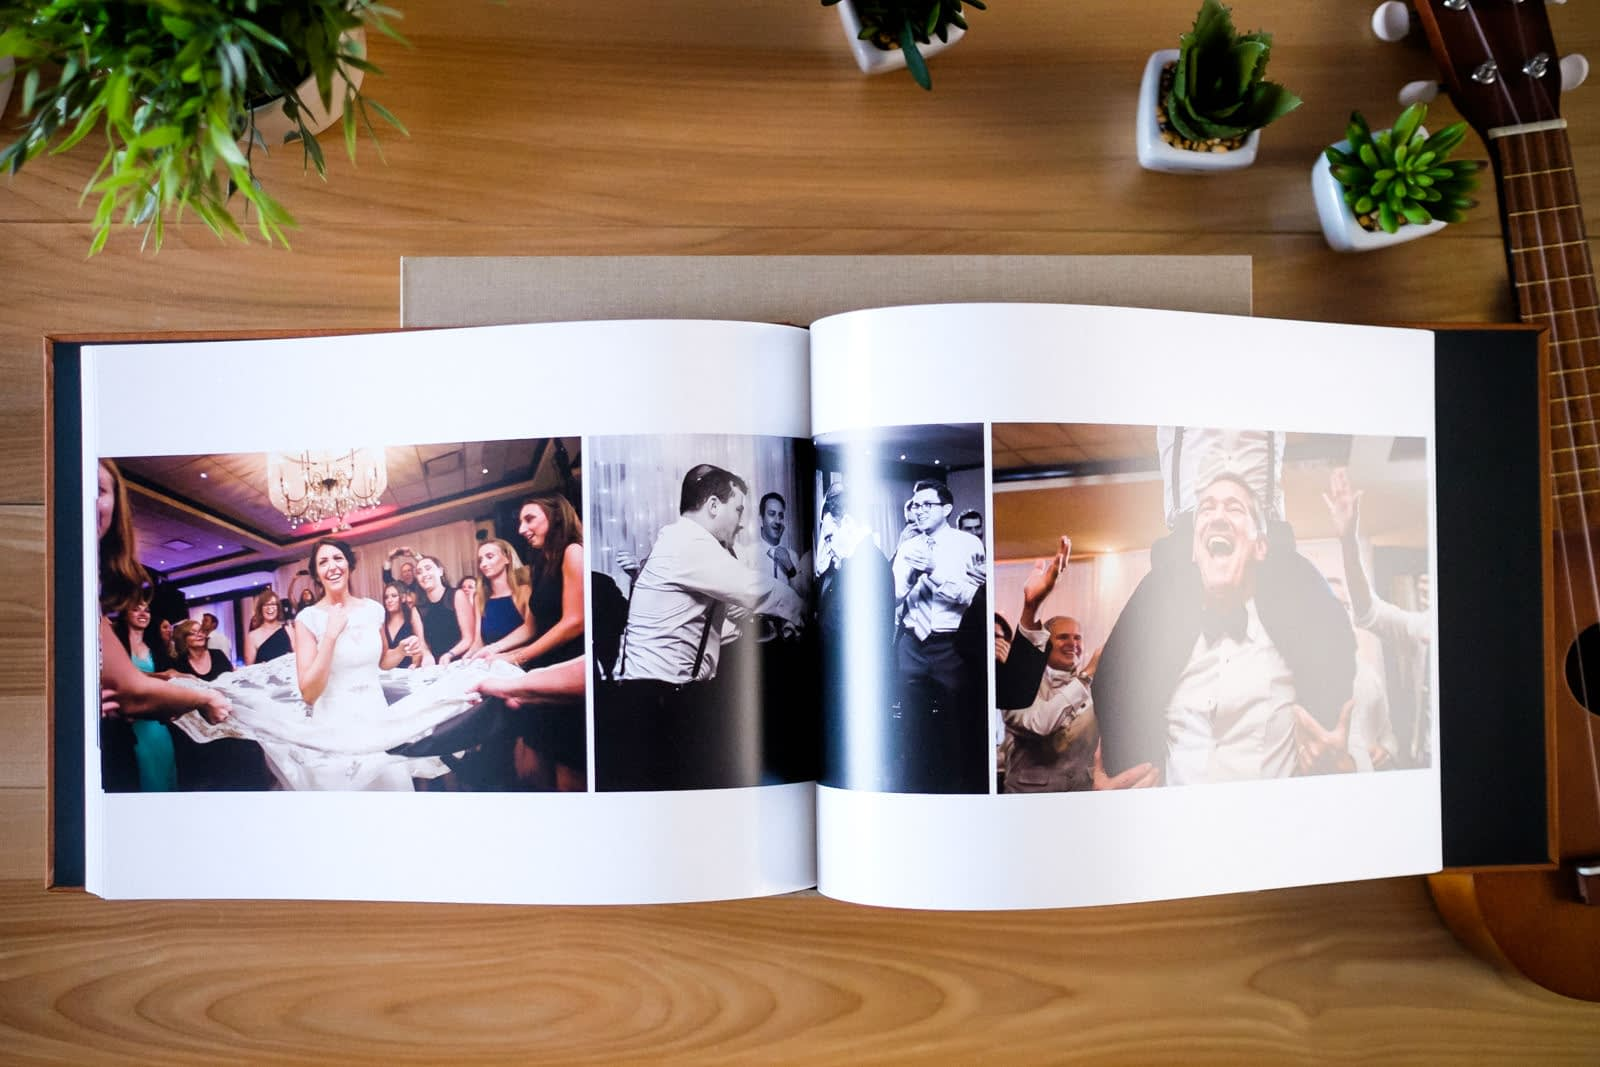 A look at a wedding book spread with images from the wedding reception